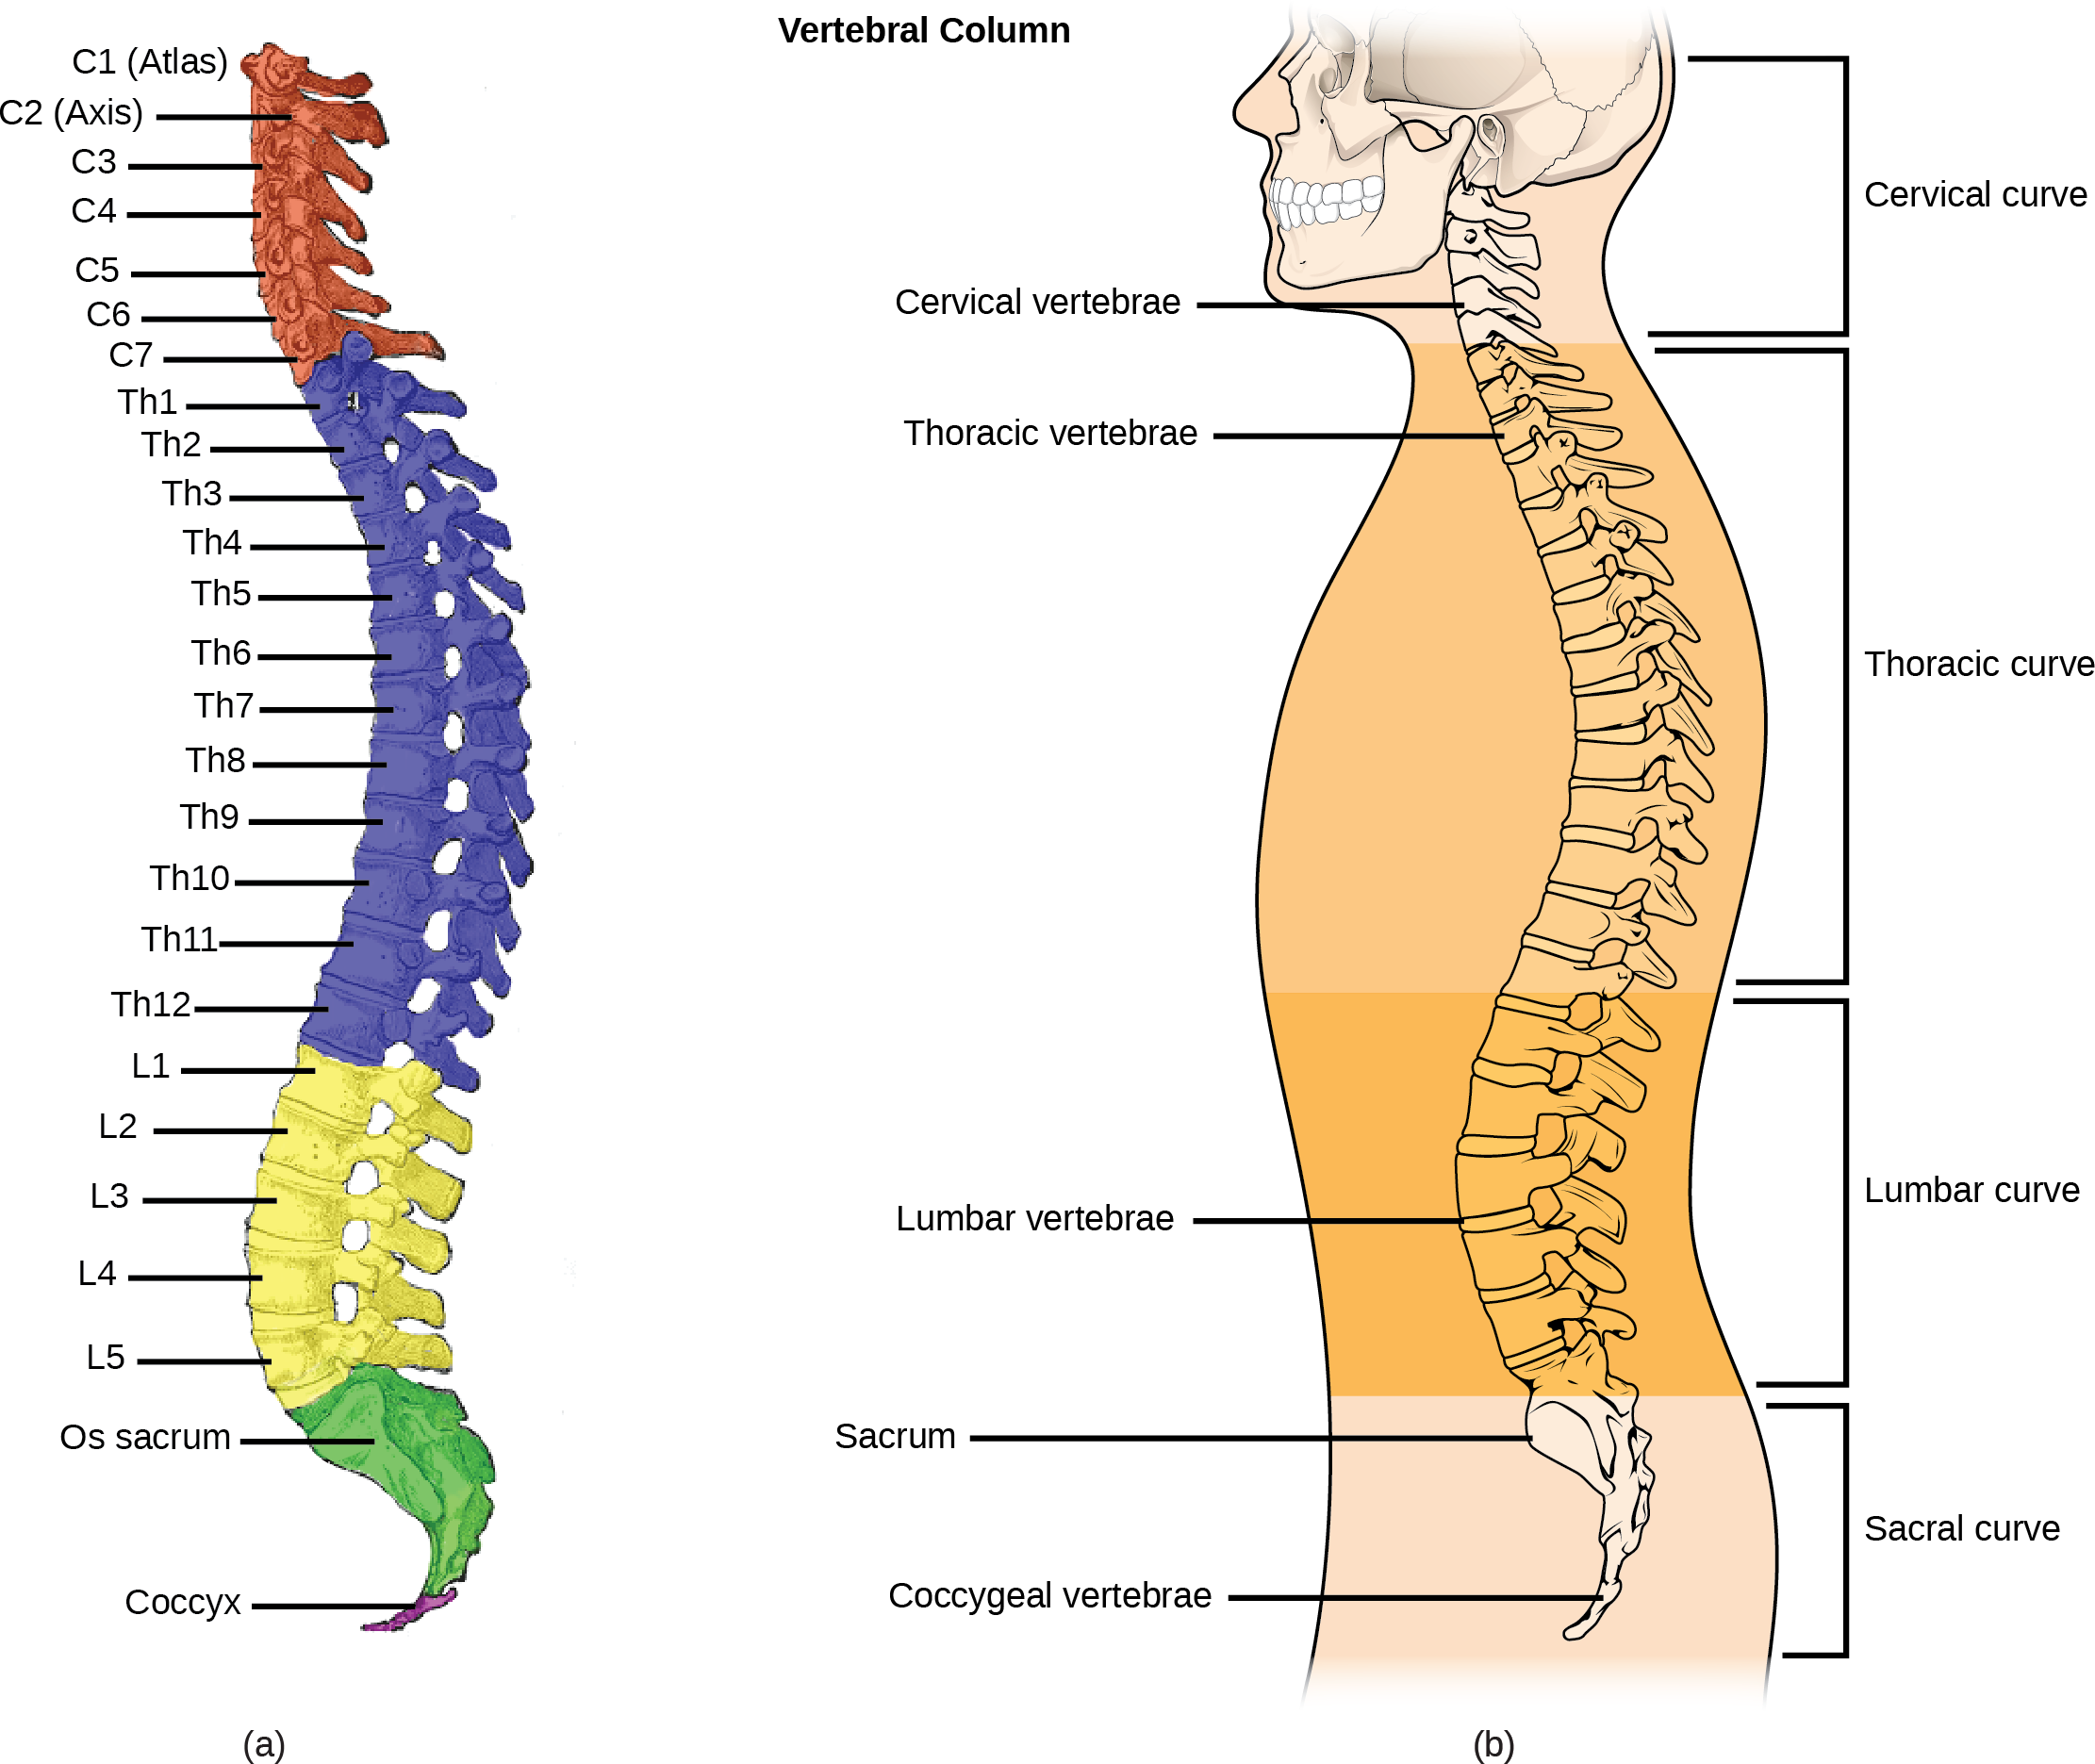 Illustration A shows all the vertebrae in a vertebral column. Illustration B shows that different sections of vertebrae curve in different directions. The cervical vertebrae in the neck curve toward the front of the body. The top cervical vertebrae is called the atlas, or c 1.  The next bone down is the c 2, or axis.  There are 7 cerebral vertebrae.  Next are the thoracic vertebrae, which extend from the neck to the bottom of the rib cage, curve toward the back of the body.  These are labeled as T h 1, which is the first thoracic vertebrae below the cervicals, to t h 12, which is the lowest of the thoracic vertebrae.  Next are the lumbar vertebrae, which extend to the bottom of the back, curve toward the front again. These lumbar vertebrae are labeled L 1, which is the next vertebrae below the thoracics, thorugh L 5, which is the lowest lumbar vertebrae.  The sacrum and the coccygeal vertebrae make up the sacral curve that curves toward the back.  The sacrum is above the coccyx.